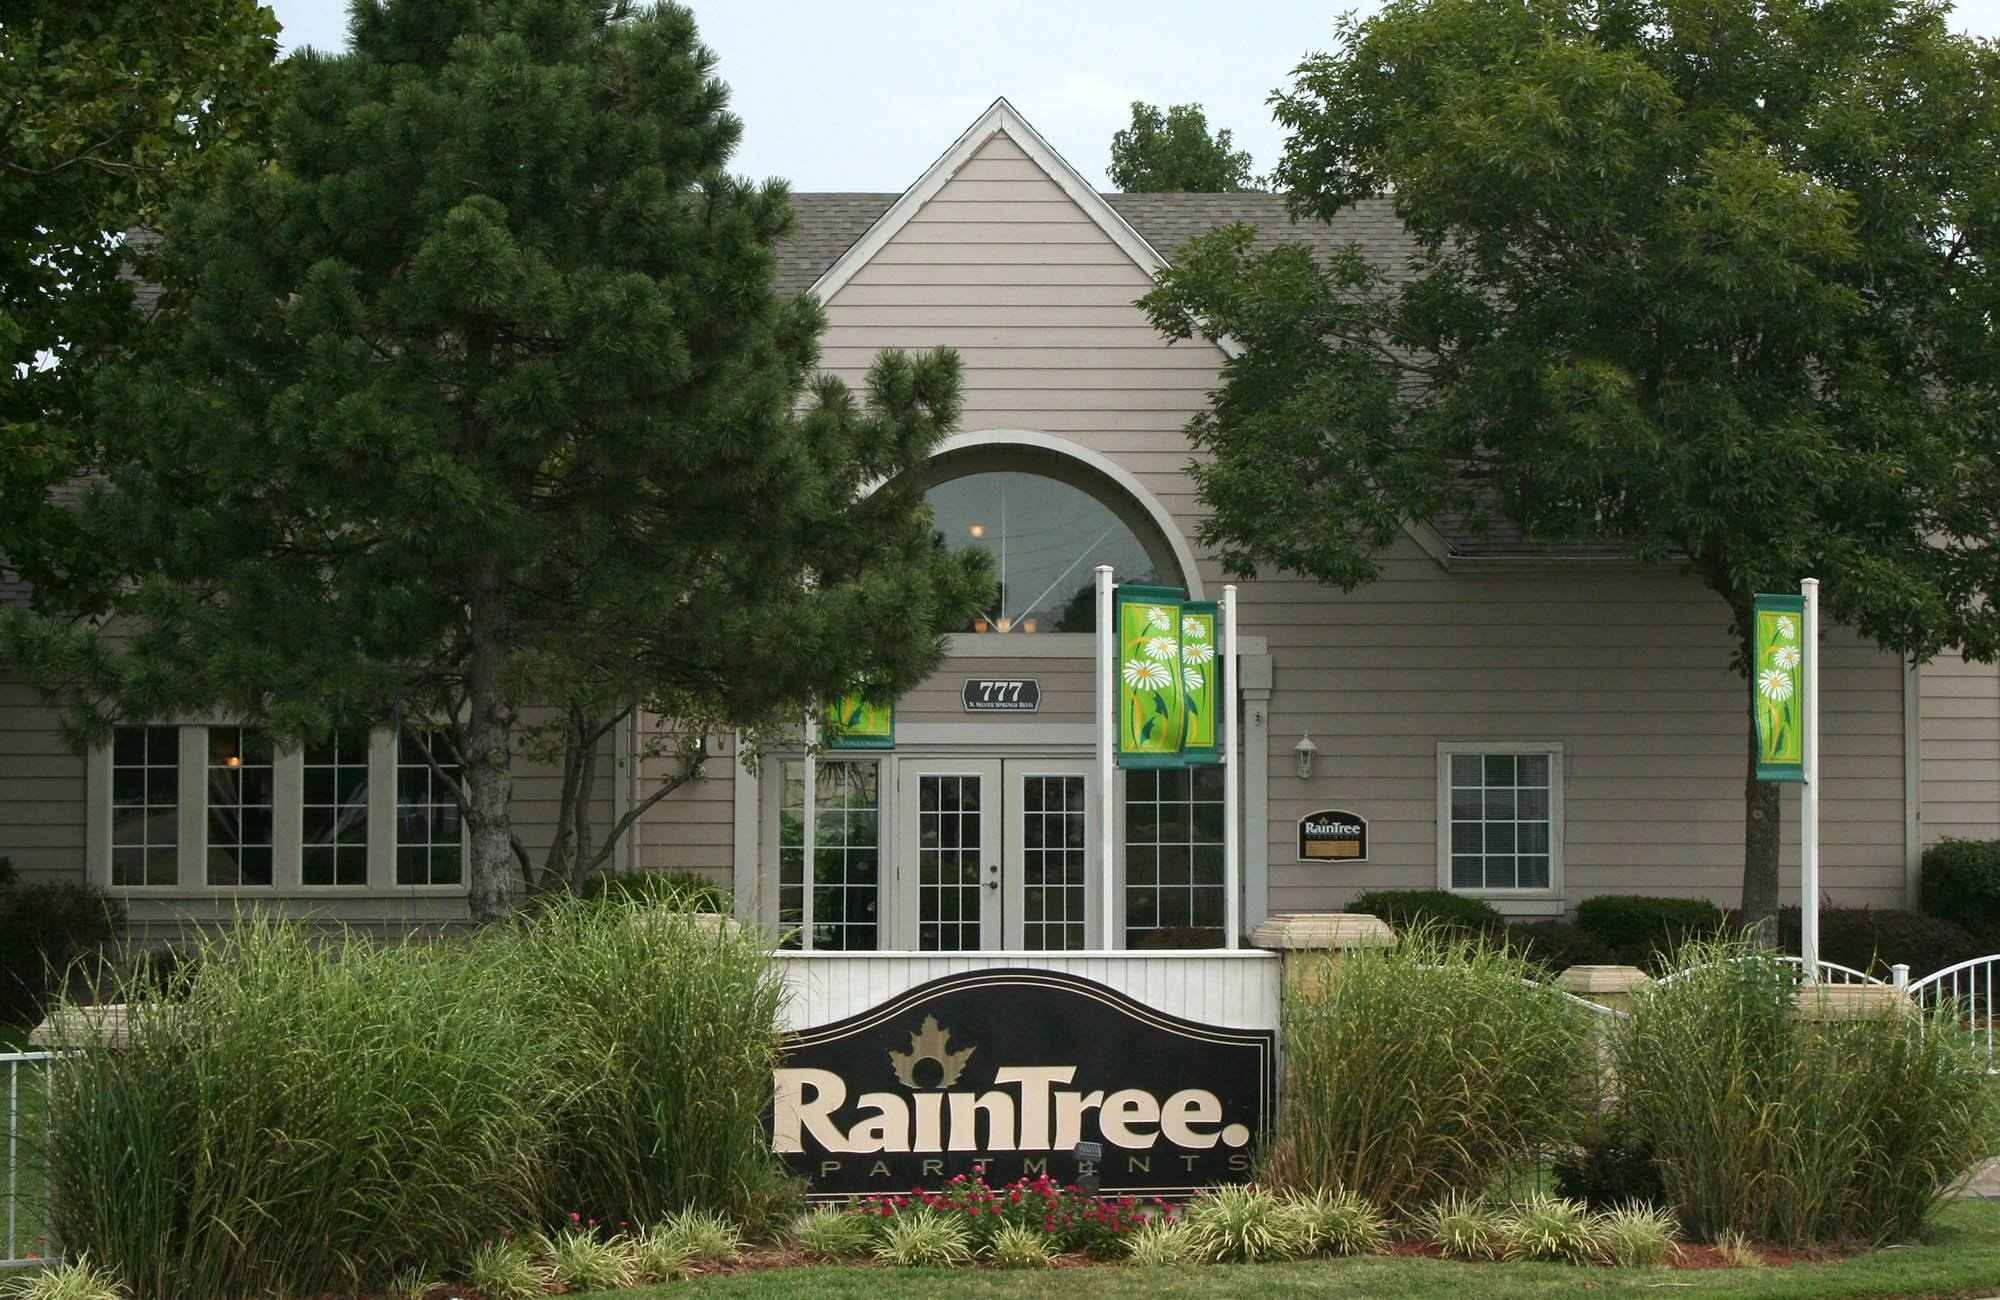 Raintree Apartments in Wichita